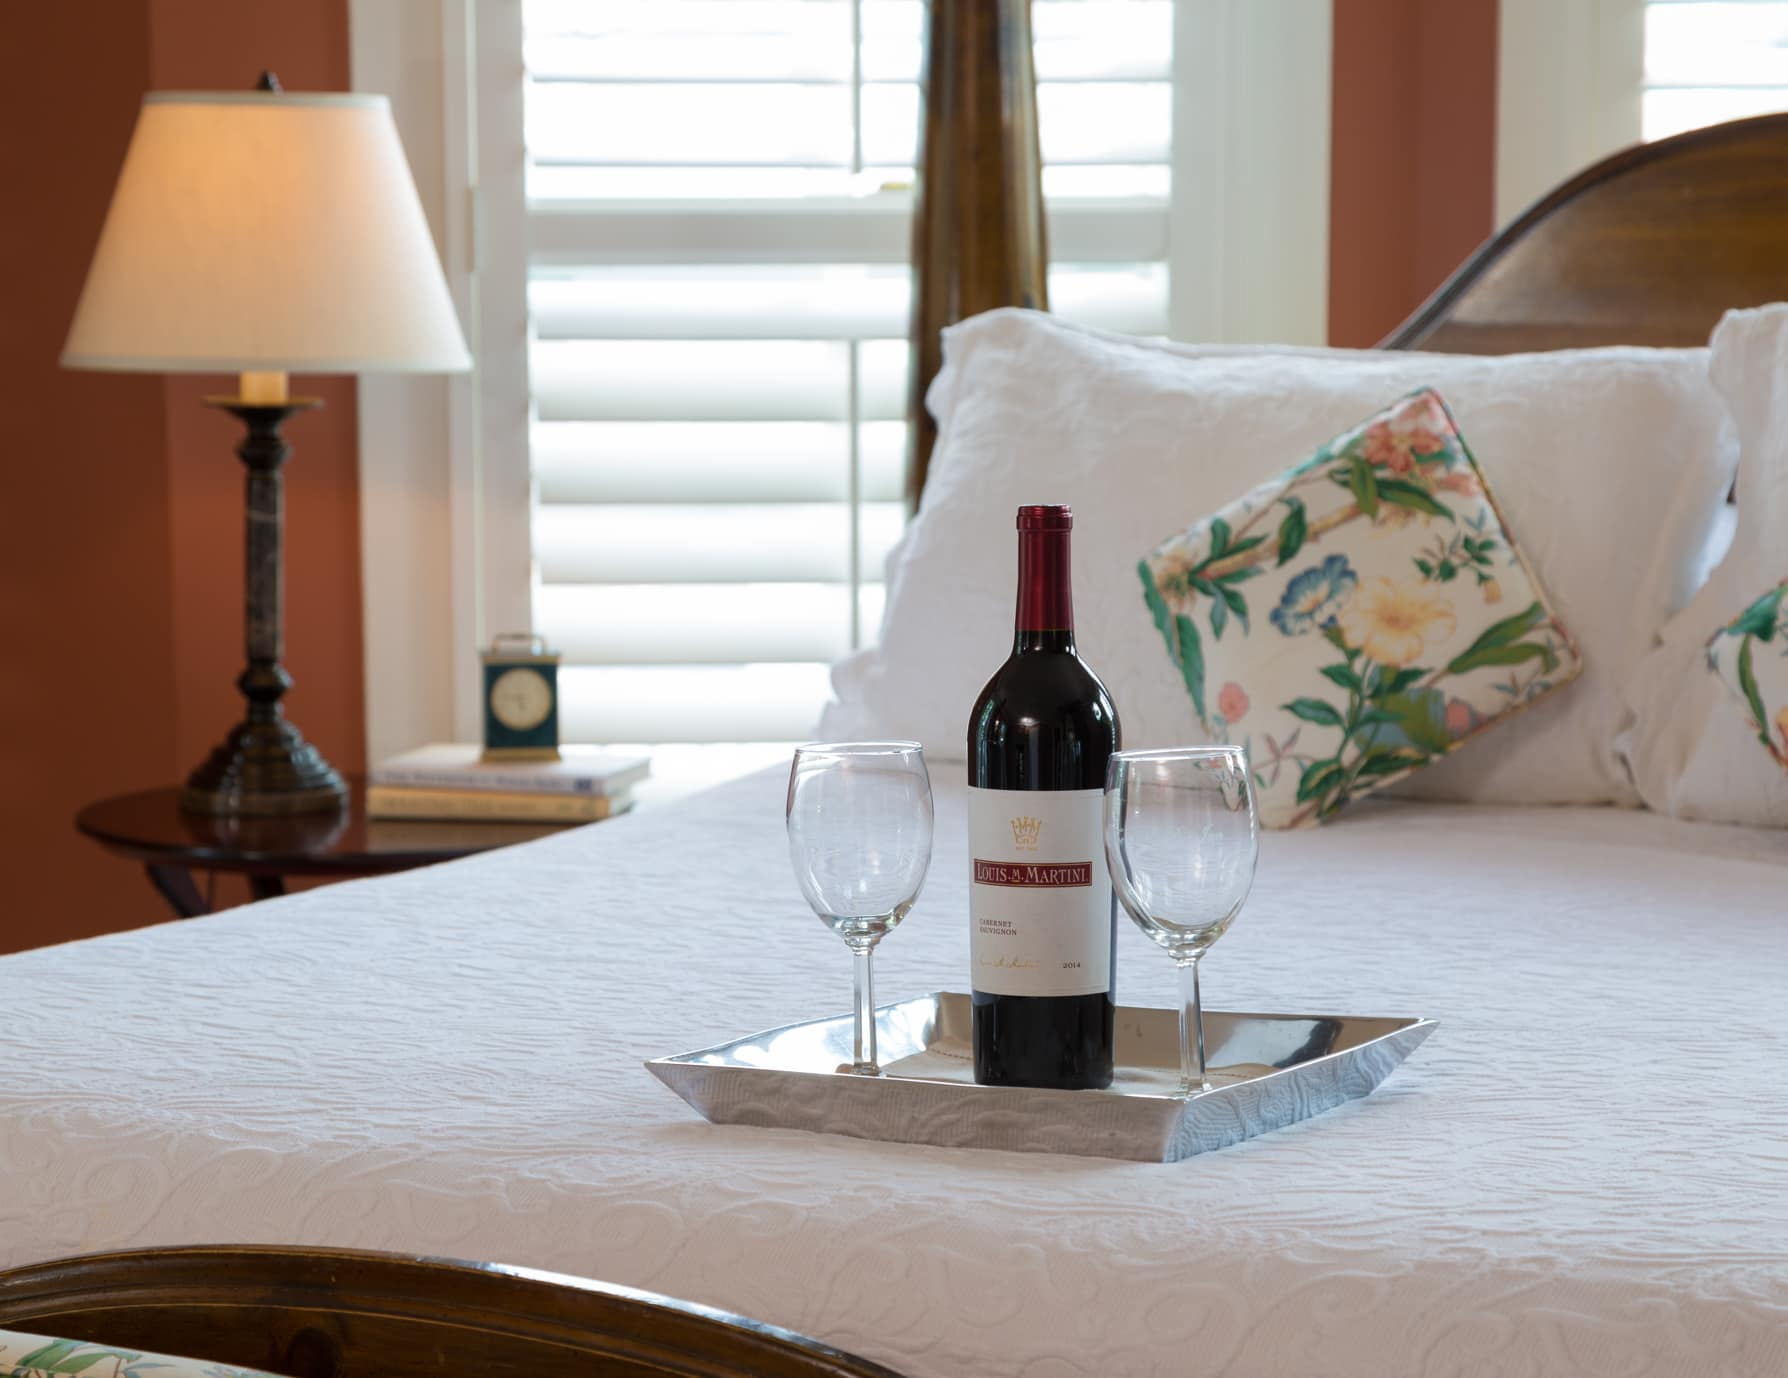 Enjoy a Bottle of Red Wine During a Romantic Getaway to NC Beaches